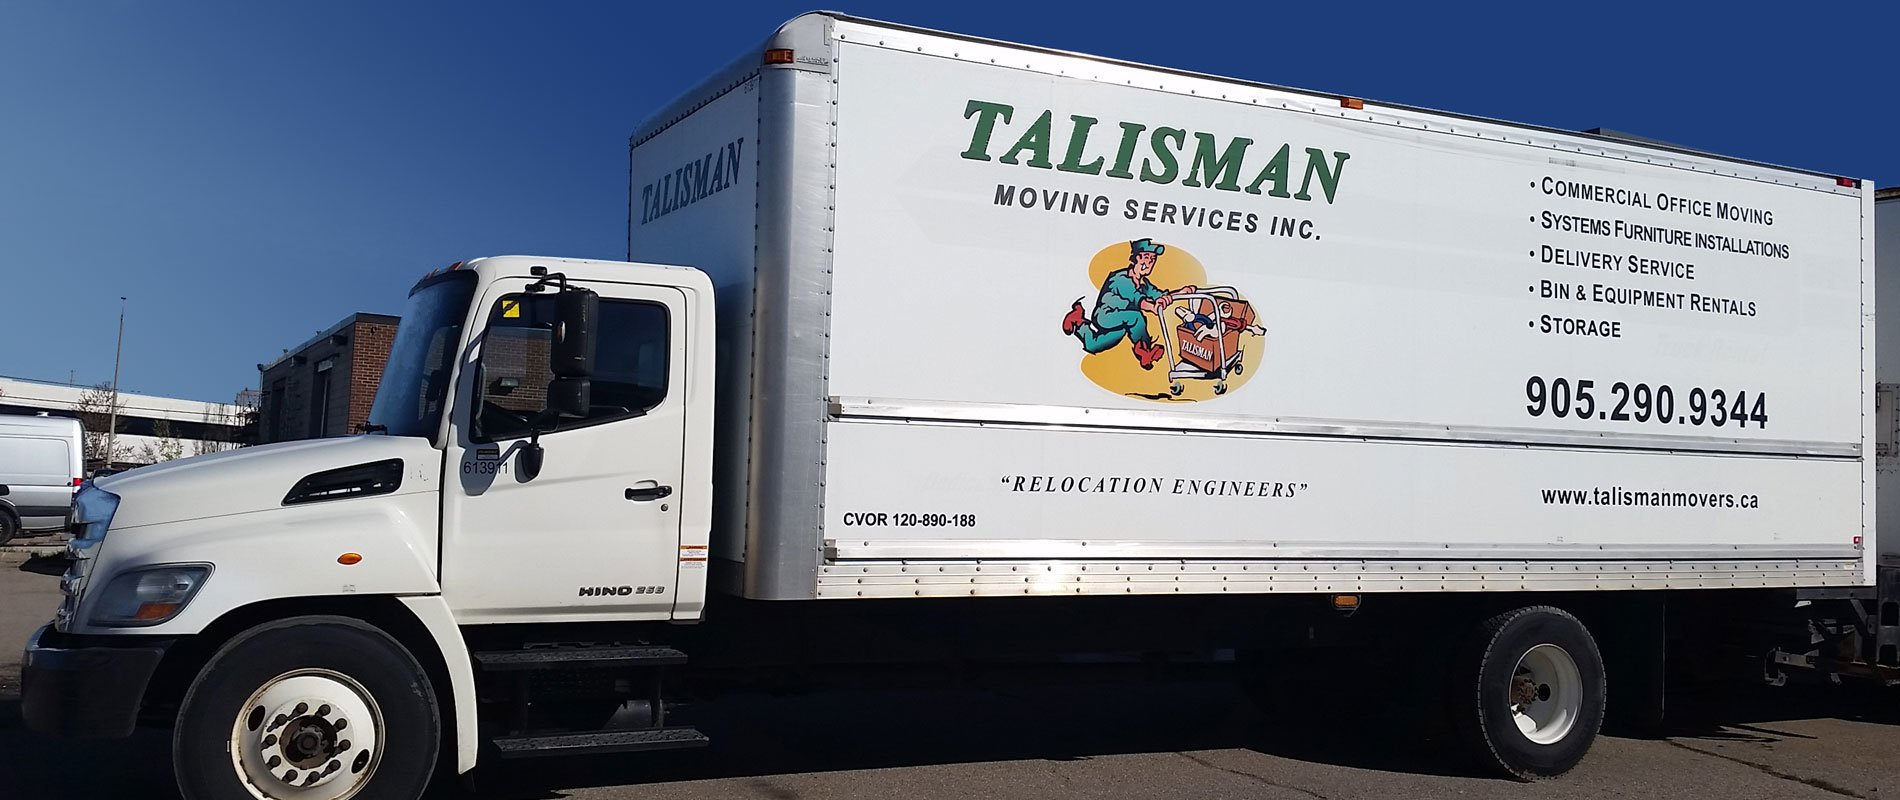 Talisman Movers Truck